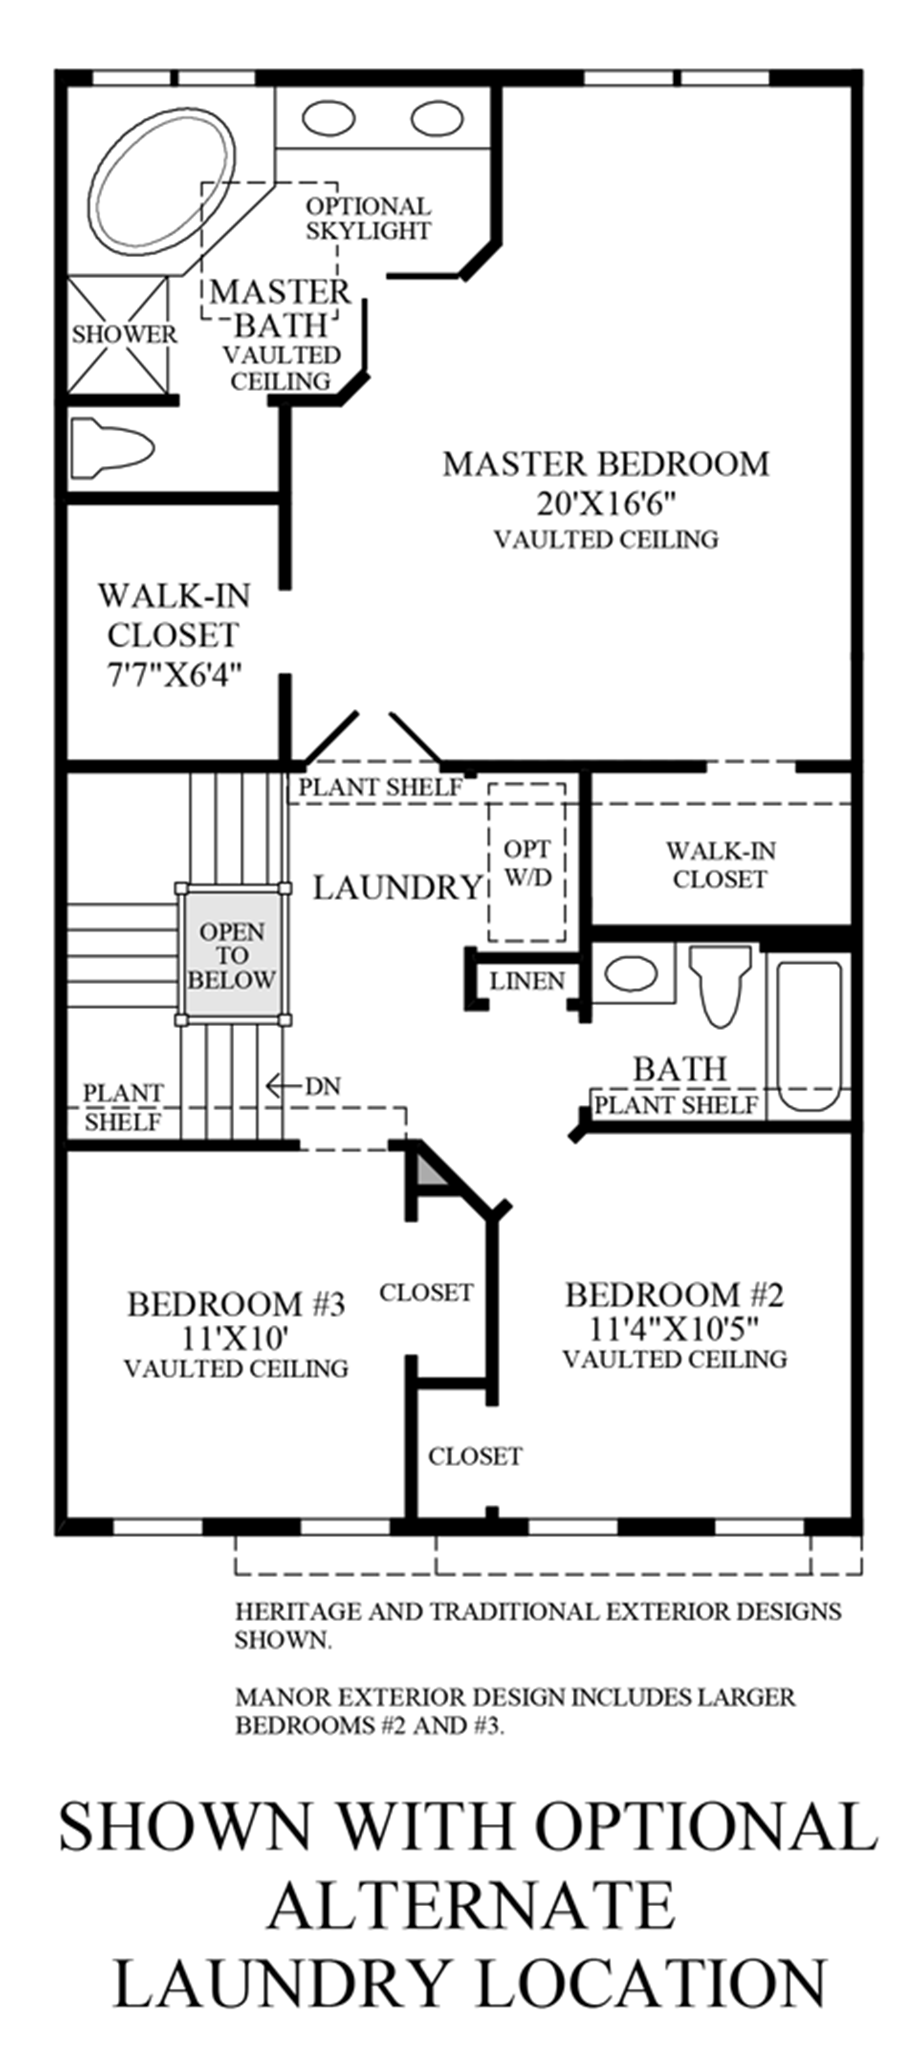 Optional Alternate Laundry Location Floor Plan